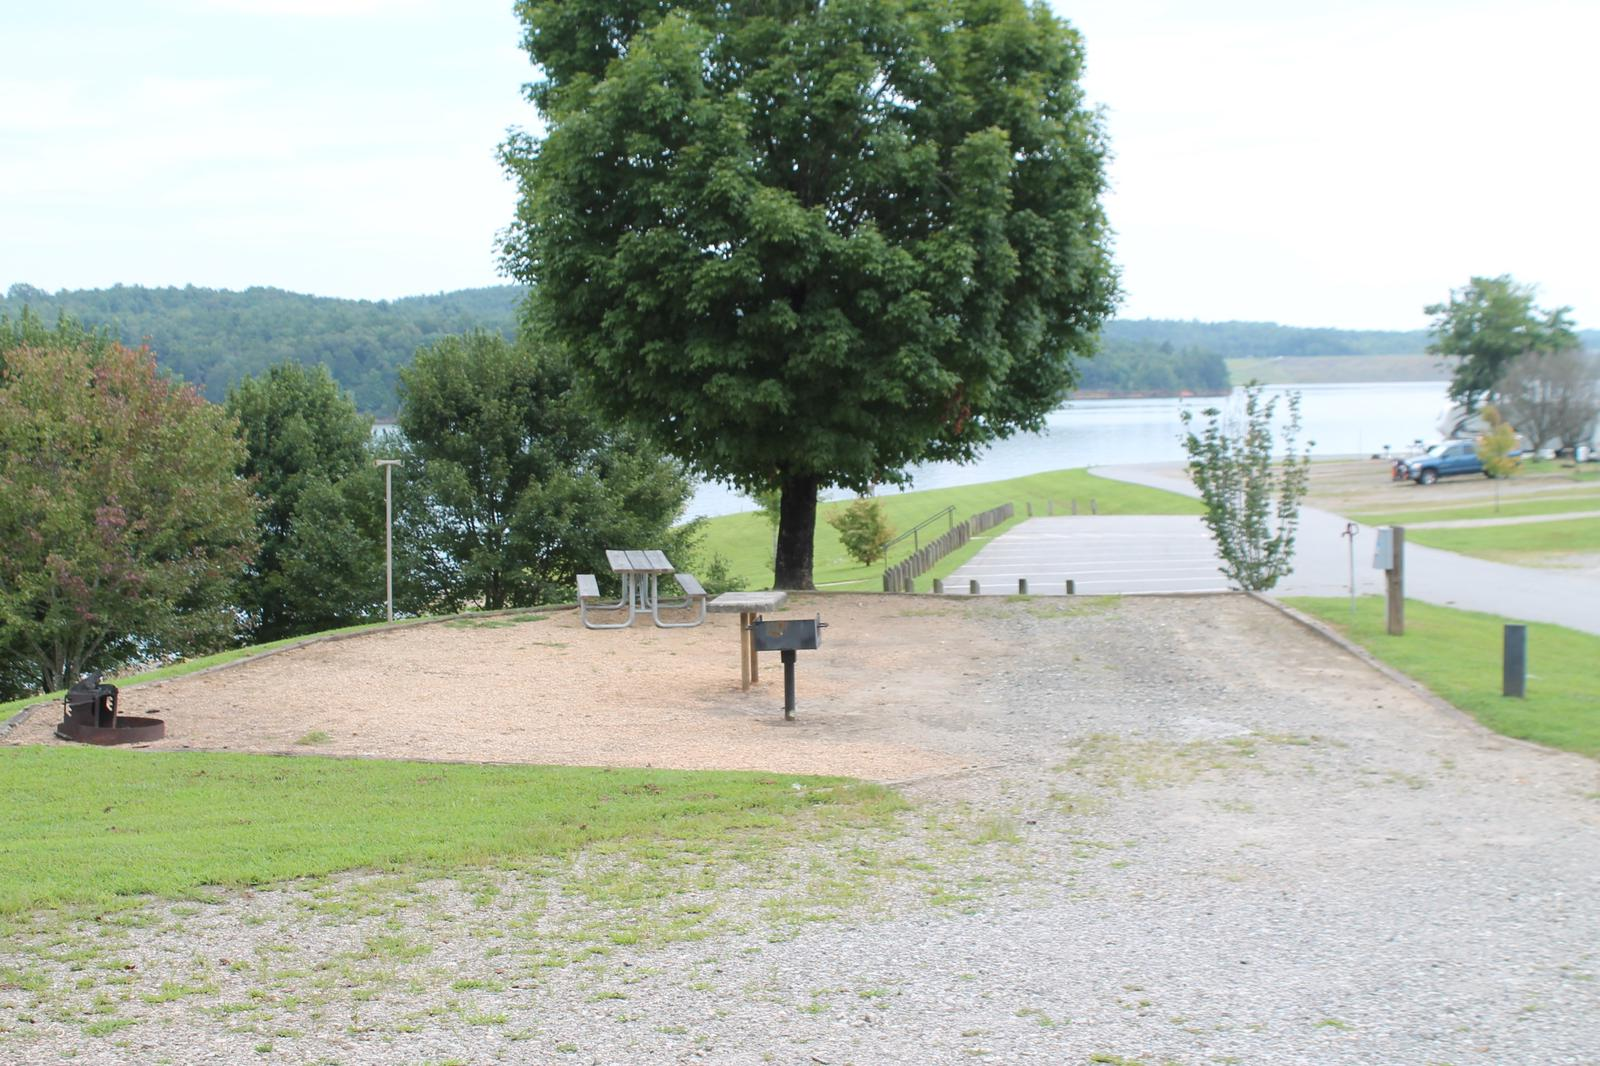 Gravel site with fire pit, table, grill, and views of the lake